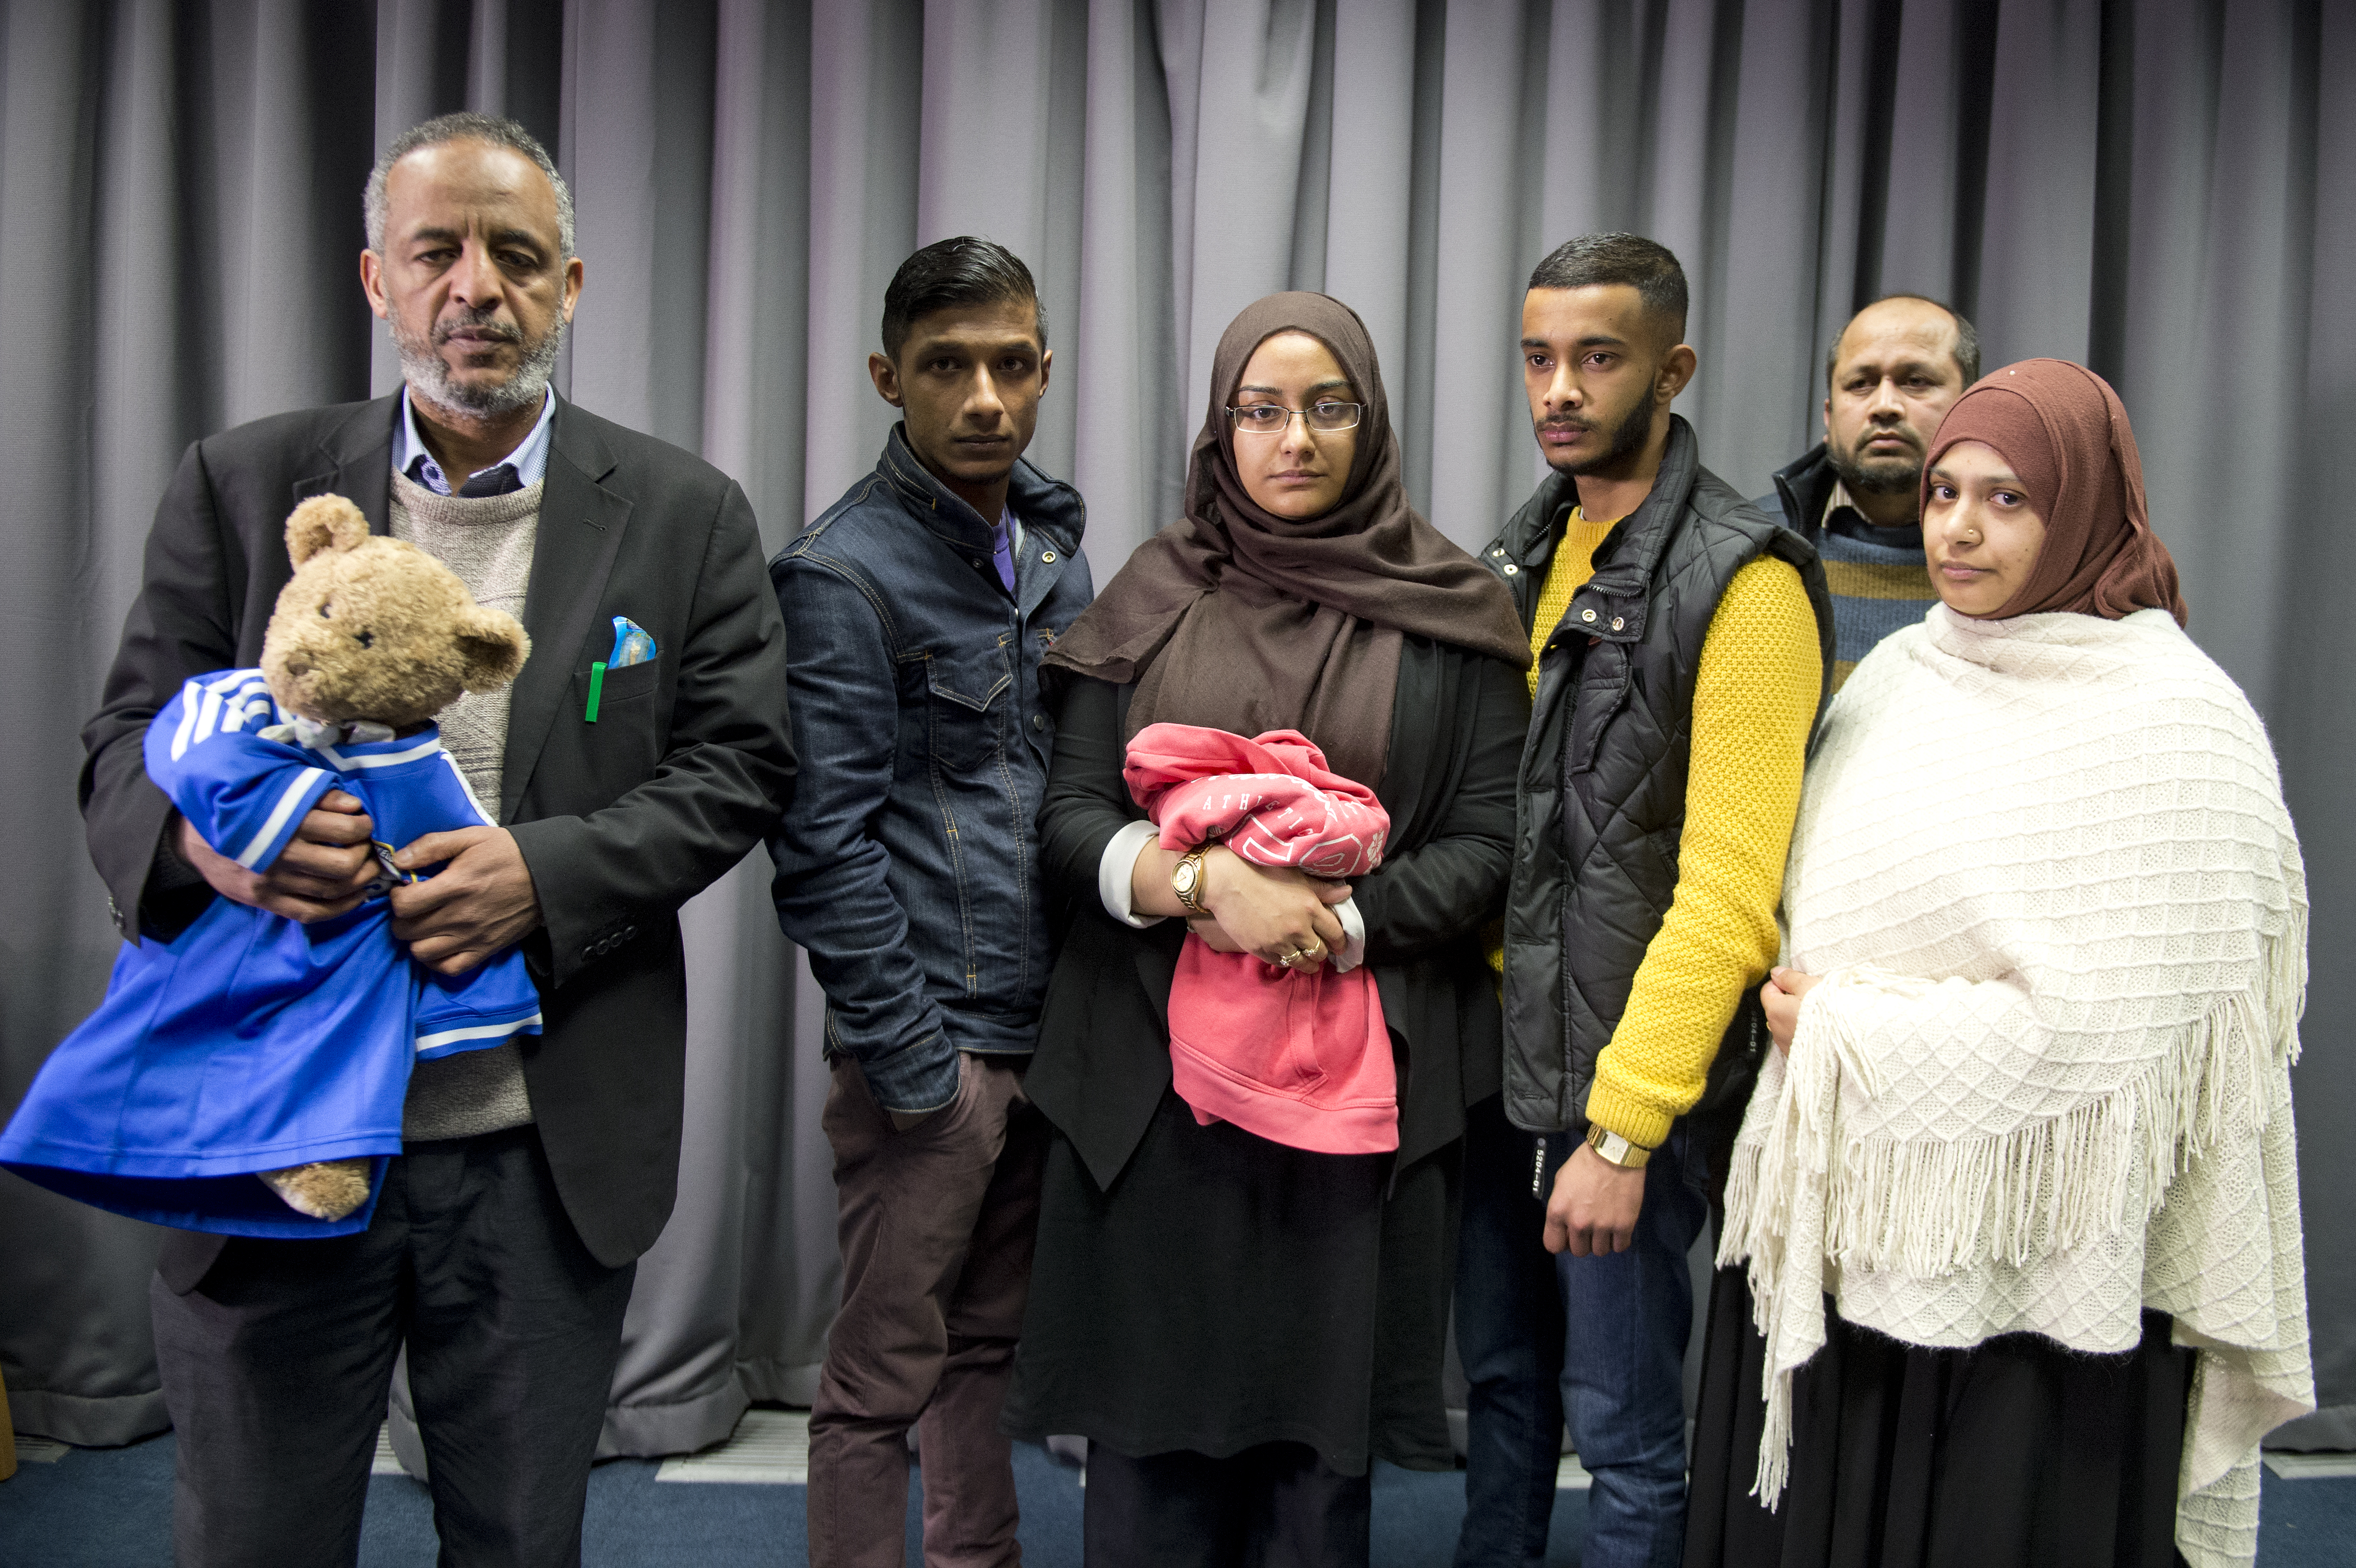 The families of Amira Abase and Shamima Begum, the three missing schoolgirls believed to have fled to Syria to join Islamic State, pose after being interviewed by the media at New Scotland Yard, after pleading for them to return home, on February 22, 2015, in London, England. (Getty Images)